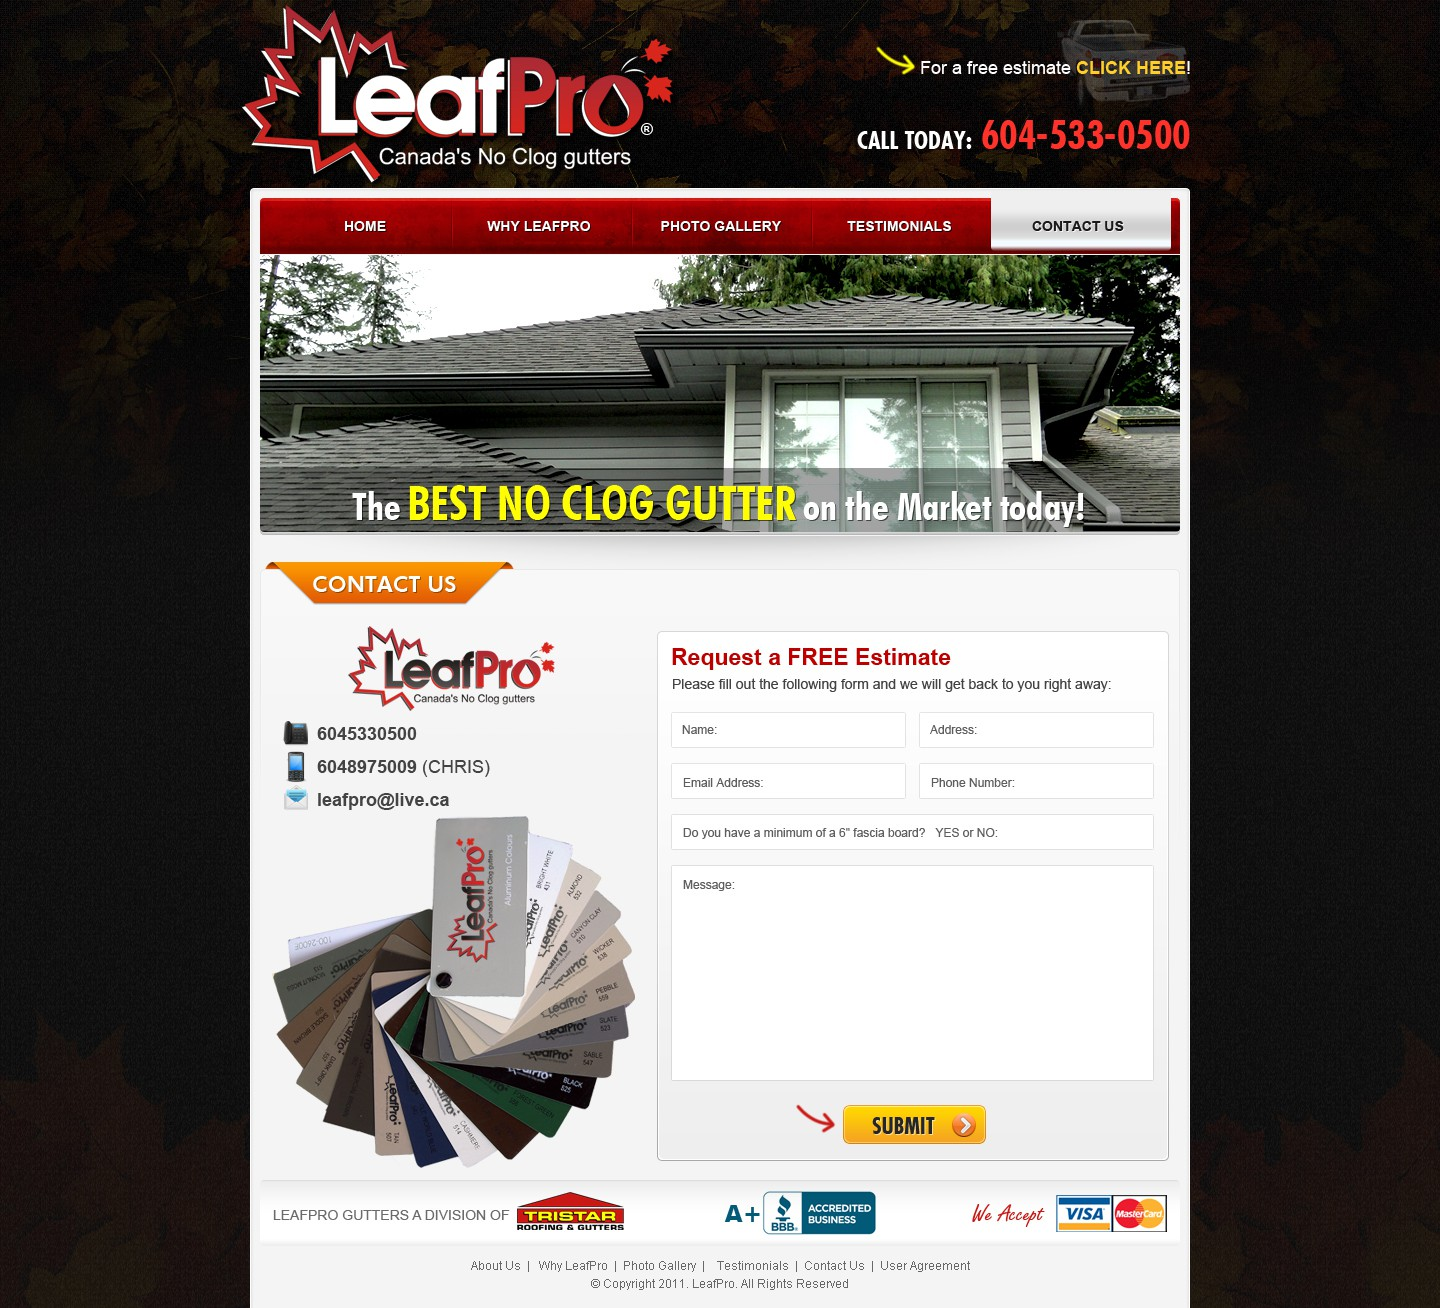 CLOSED - New website design wanted for LeafPro Gutters